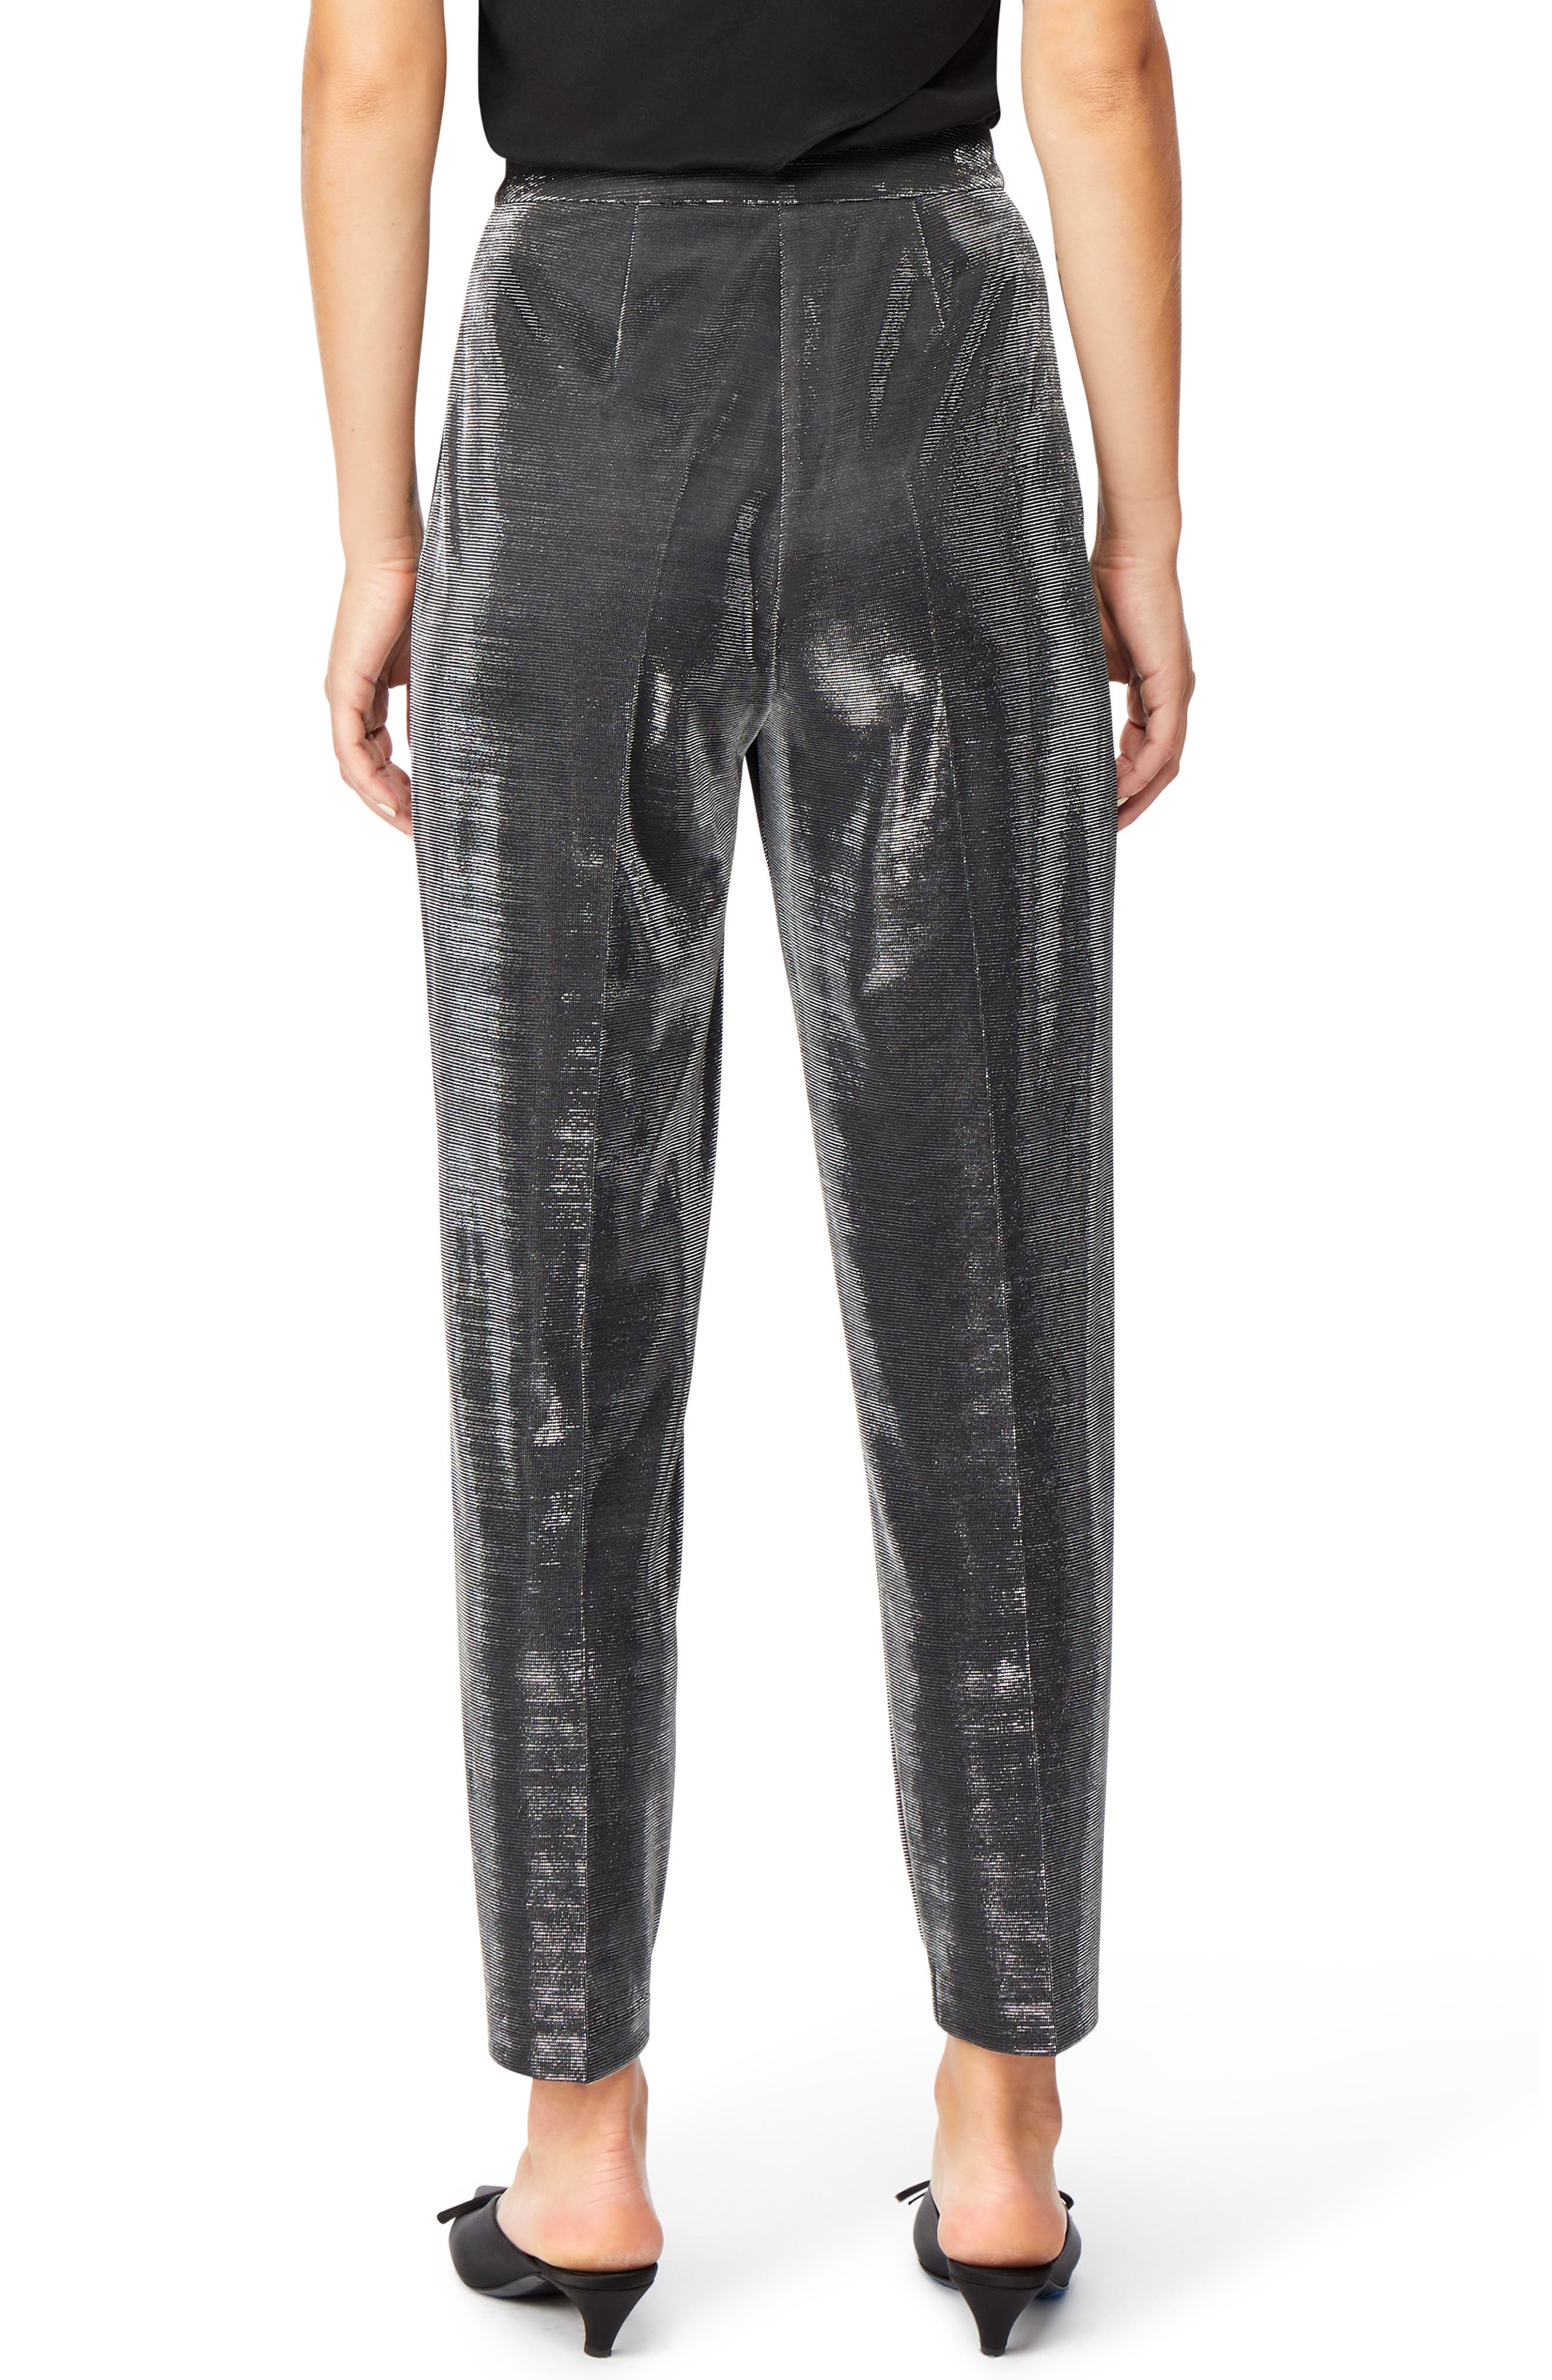 Shimmer Trousers,                             Alternate thumbnail 2, color,                             JET BLACK WITH SILVER